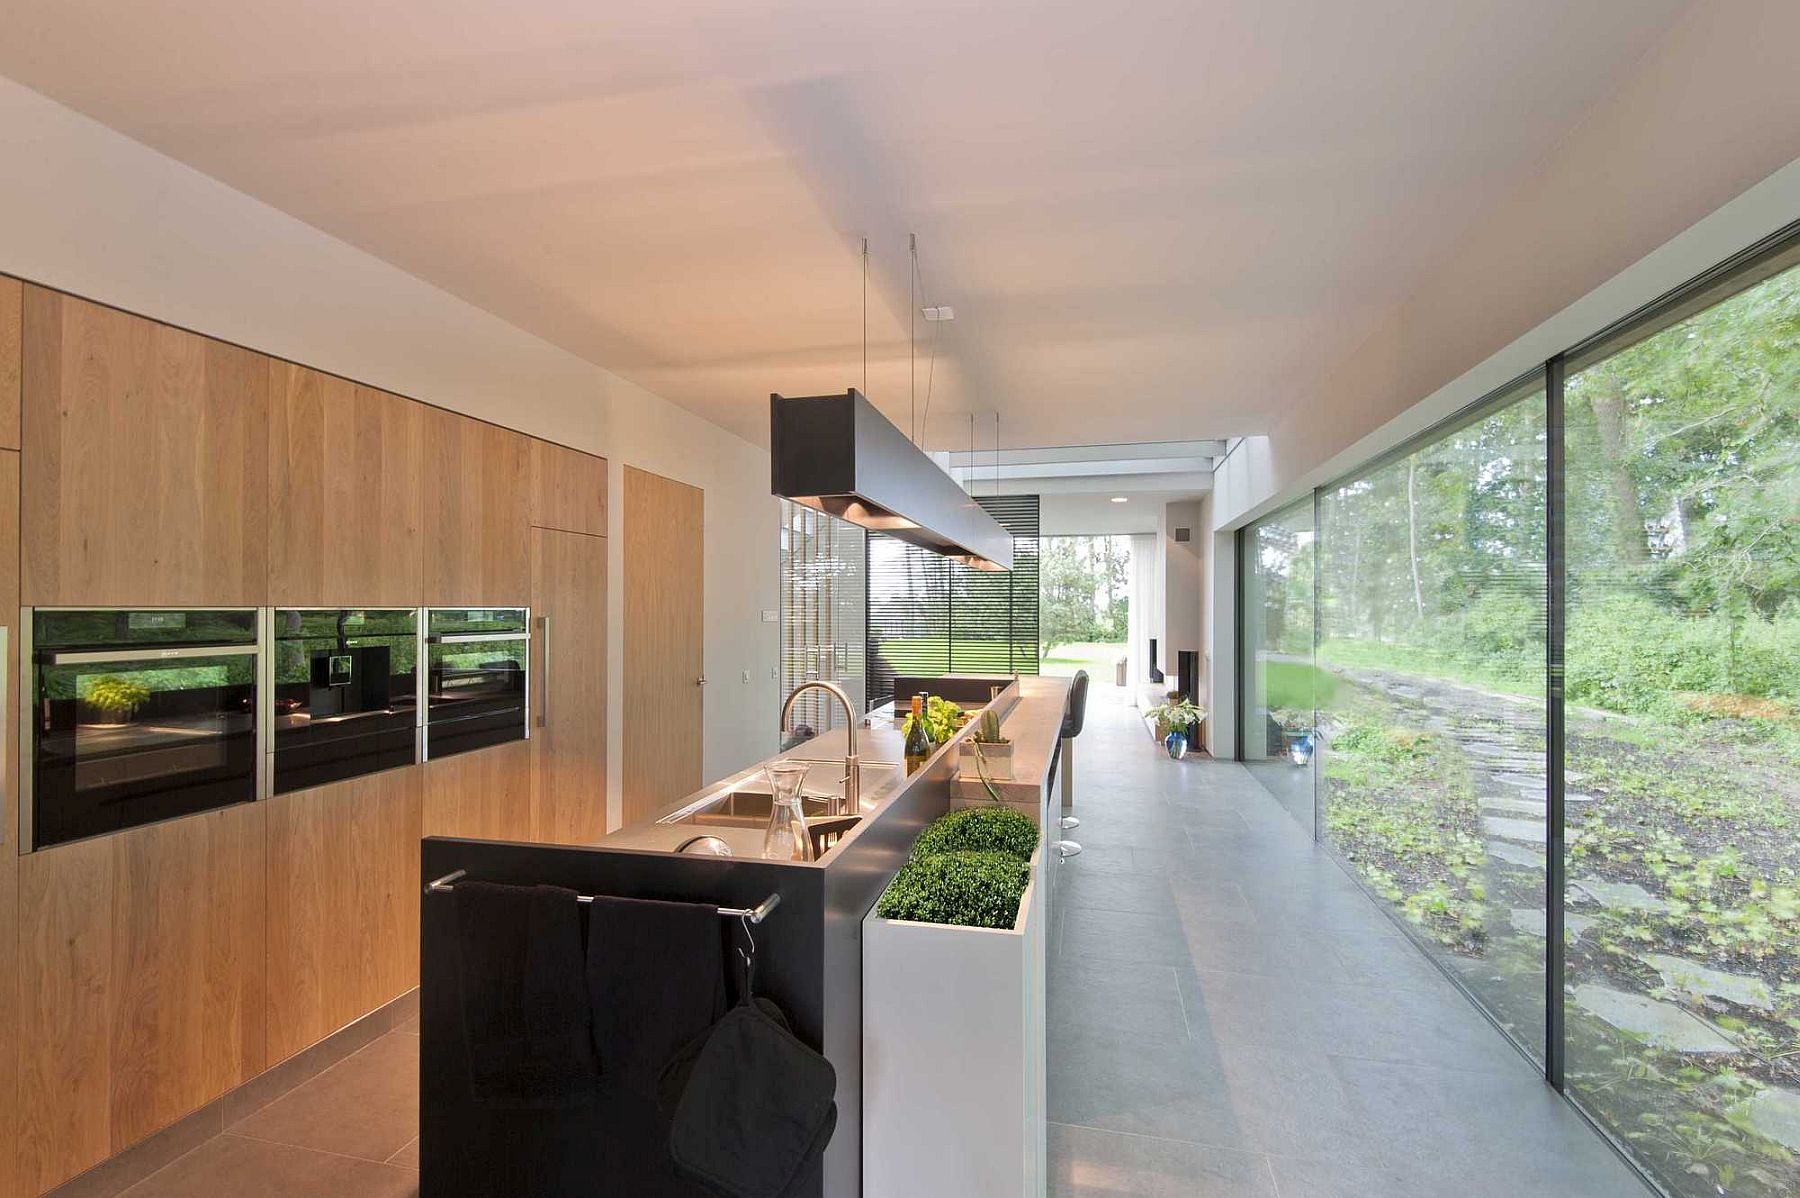 Large-floor-to-ceiling-glass-windows-offer-panoramic-views-of-the-forest-from-the-kitchen